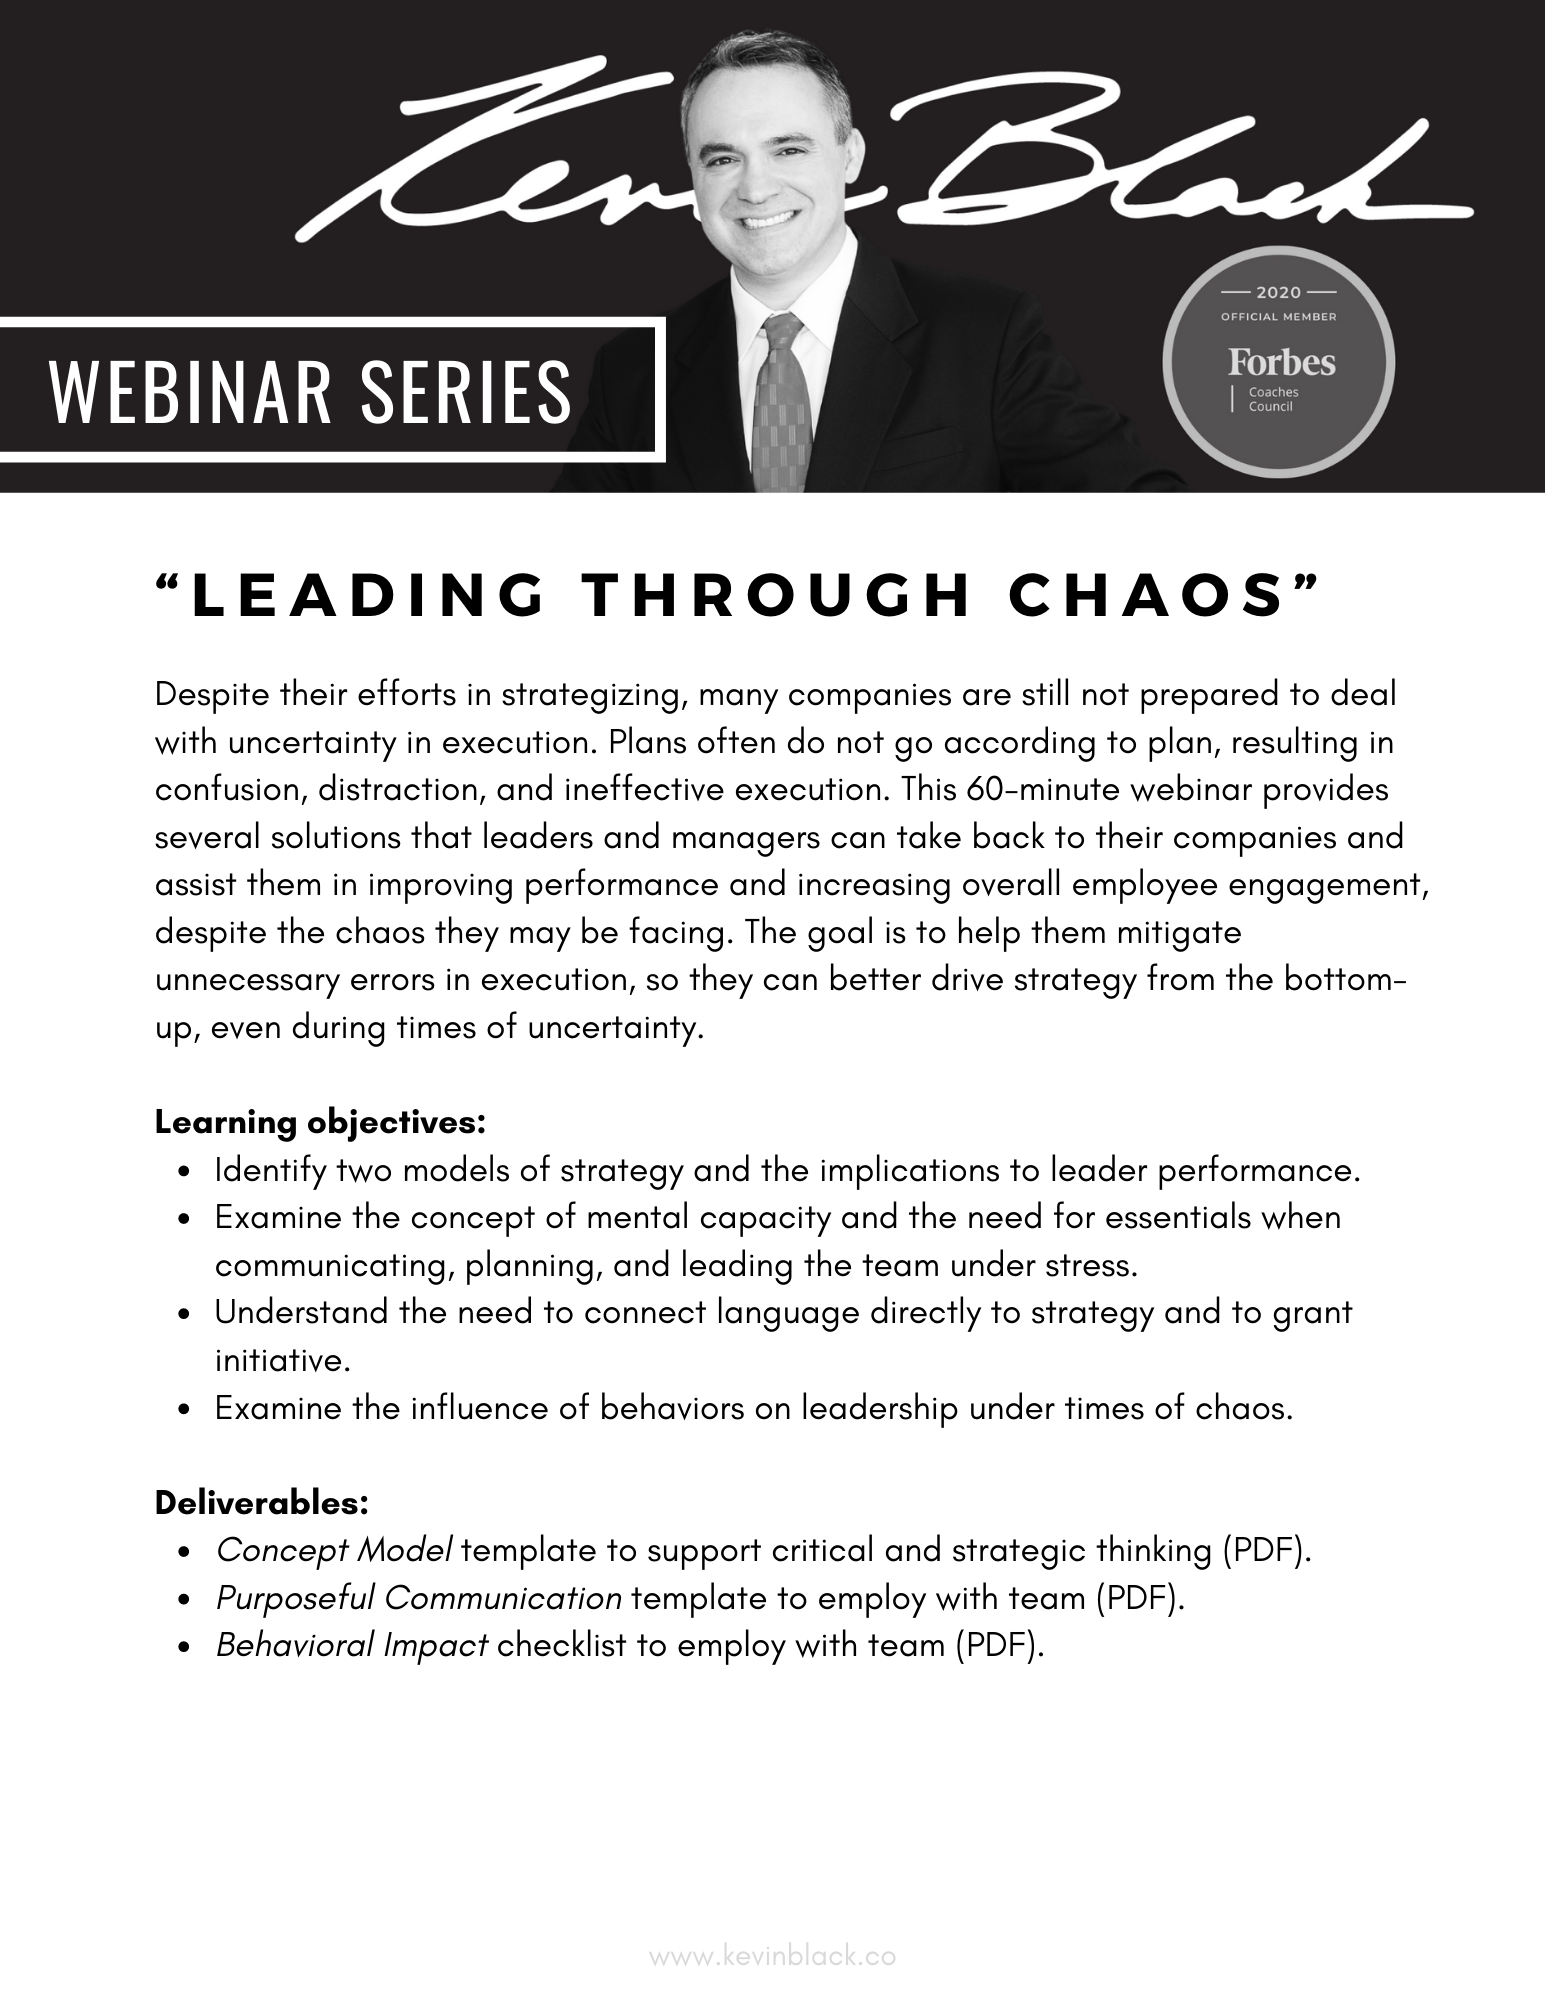 Webinar Series - Leading through Chaos - Kevin Black Forbes Coach